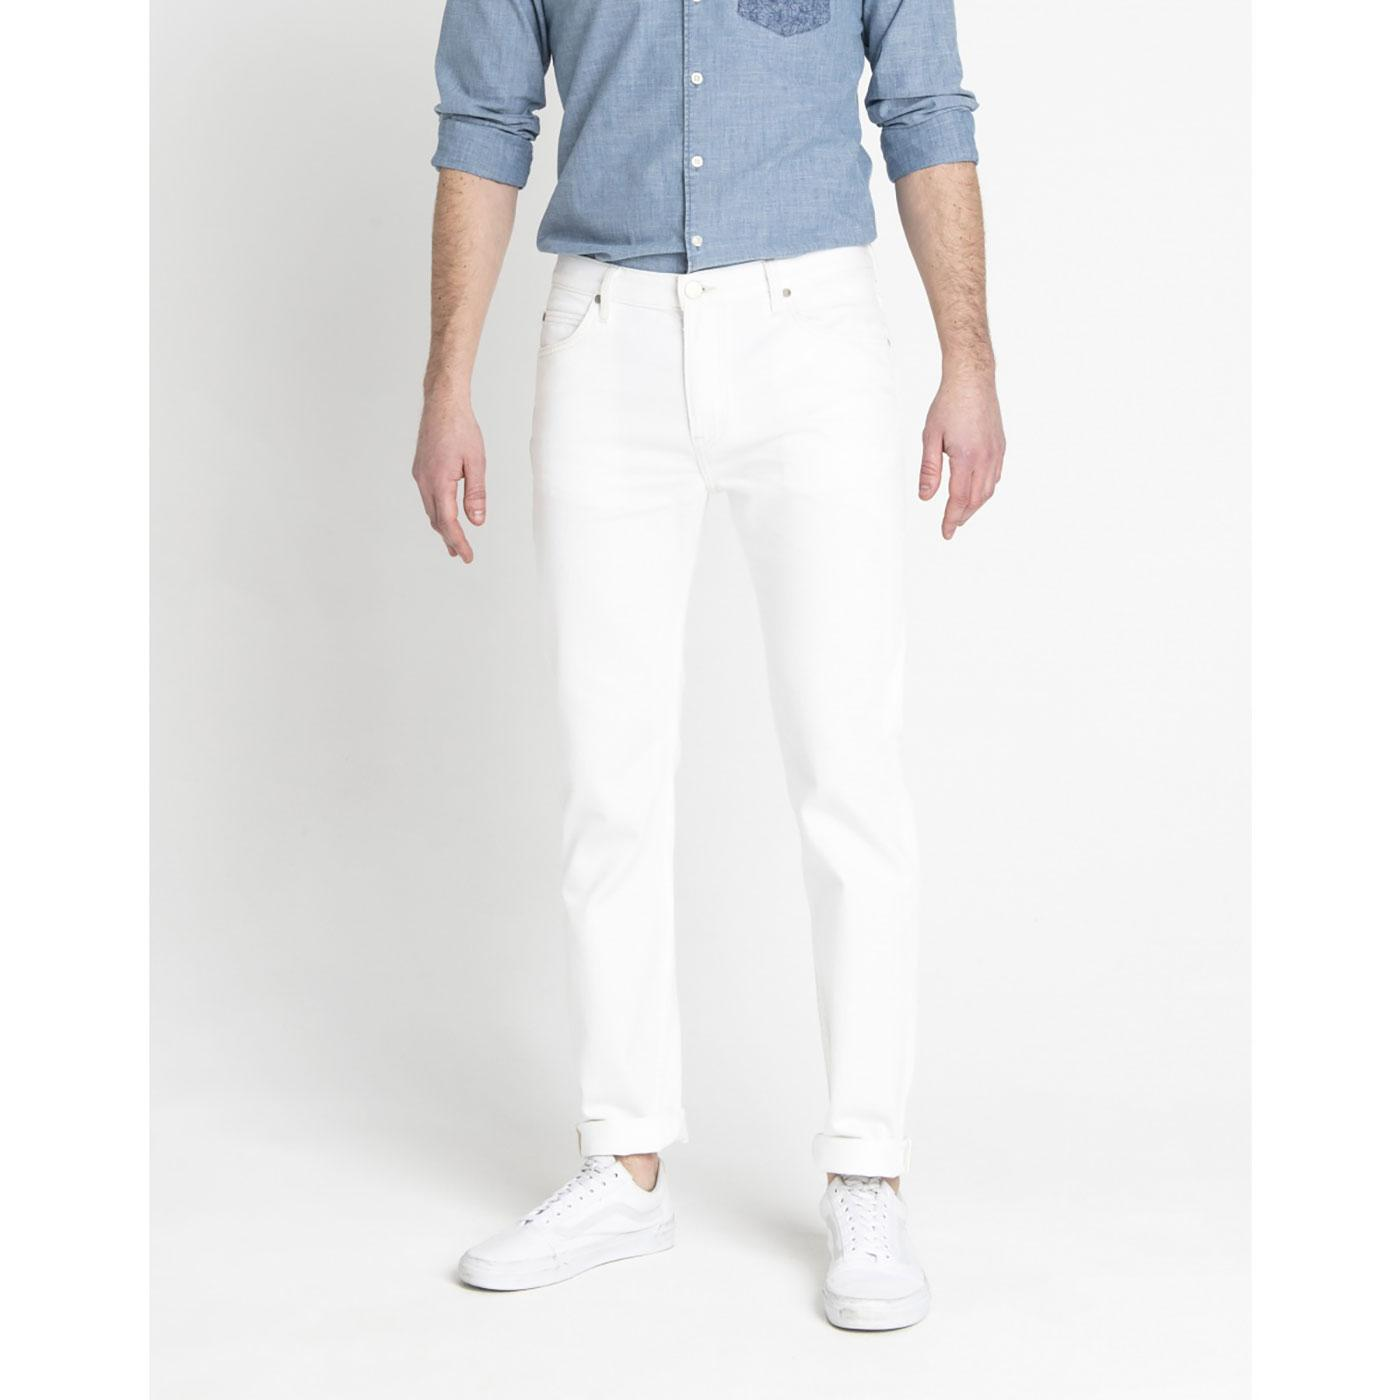 Rider LEE Slim Leg Retro Denim Jeans - Off White